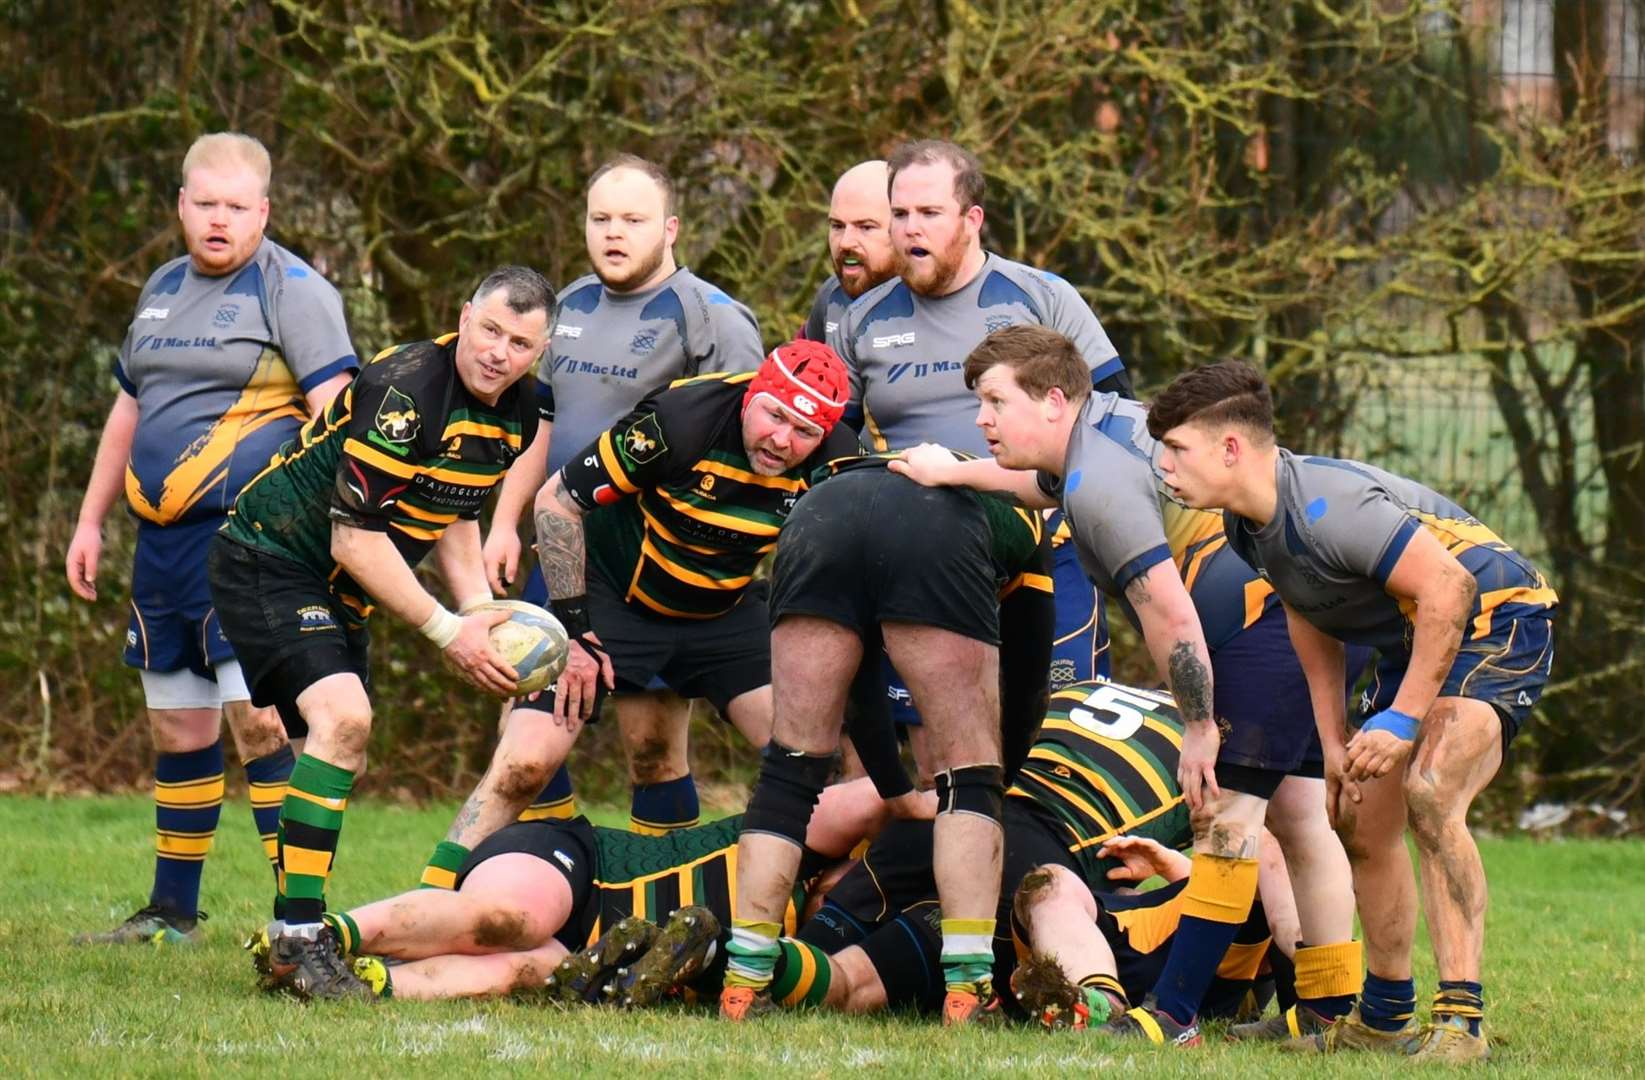 Action from Deepings' Vets against Bourne 2nd XVs at Linchfield Road.Photo by Alan Hancock. (30030674)